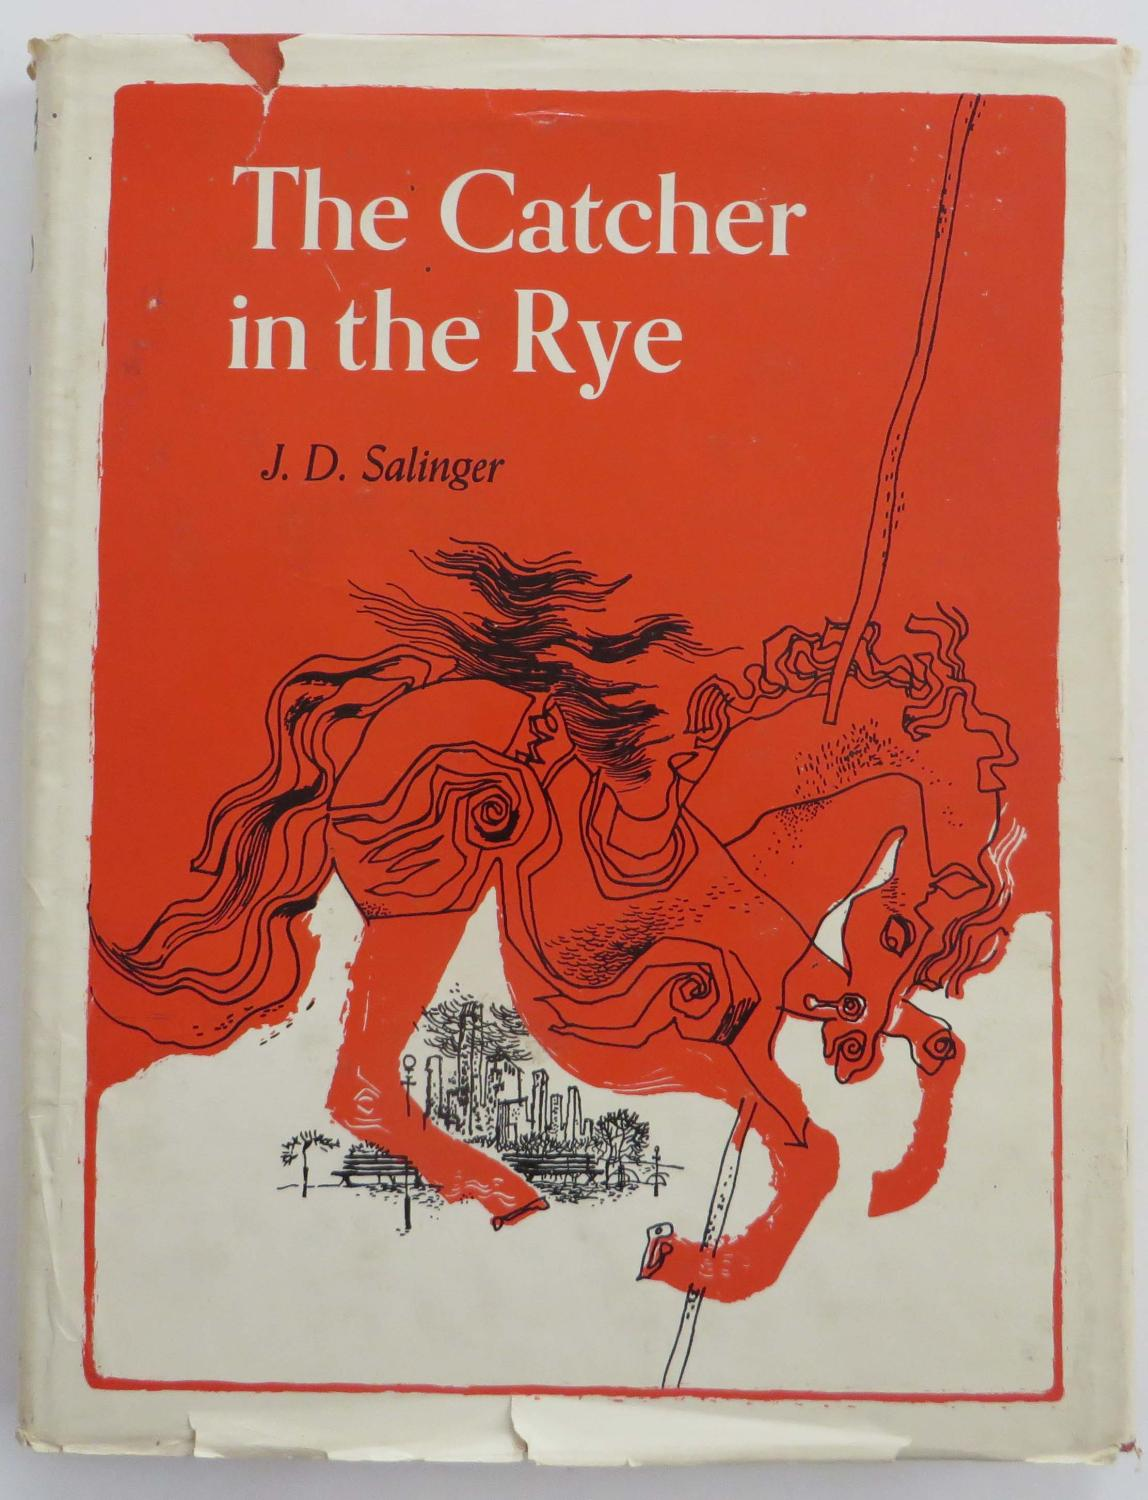 essays about the catcher in the rye If there's a need for an essay on catcher in the rye, you would probably consider ordering it and if you order it from us, we will get you a free sample.